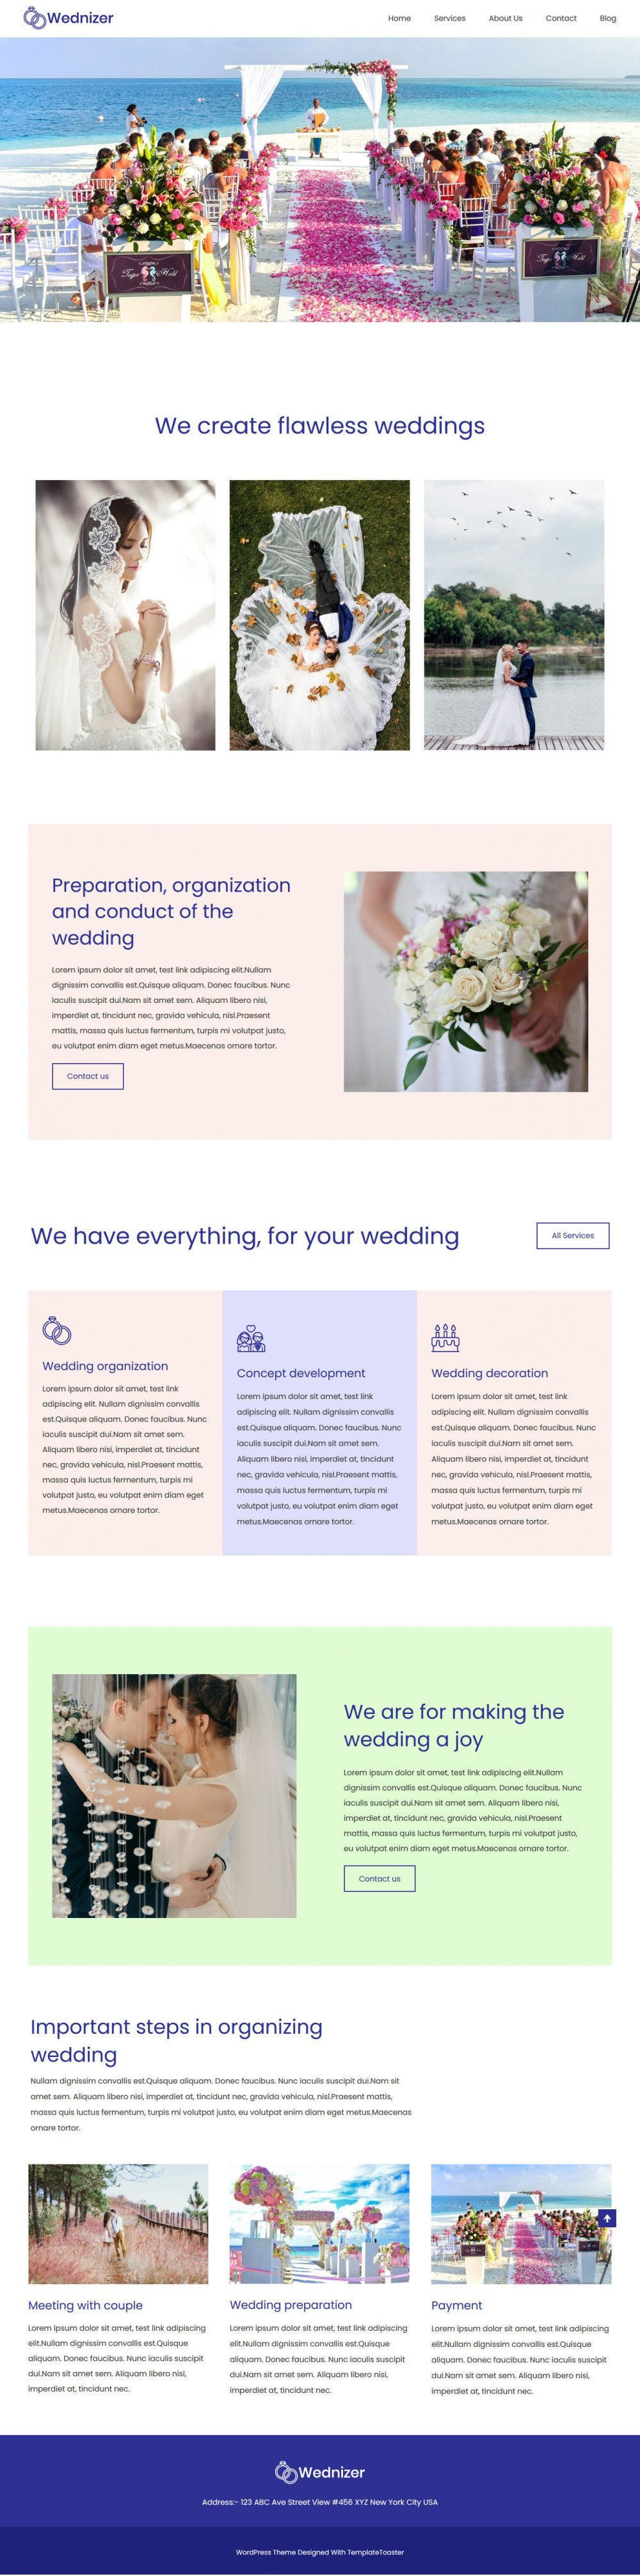 wednizer wedding organizer agency blogger template